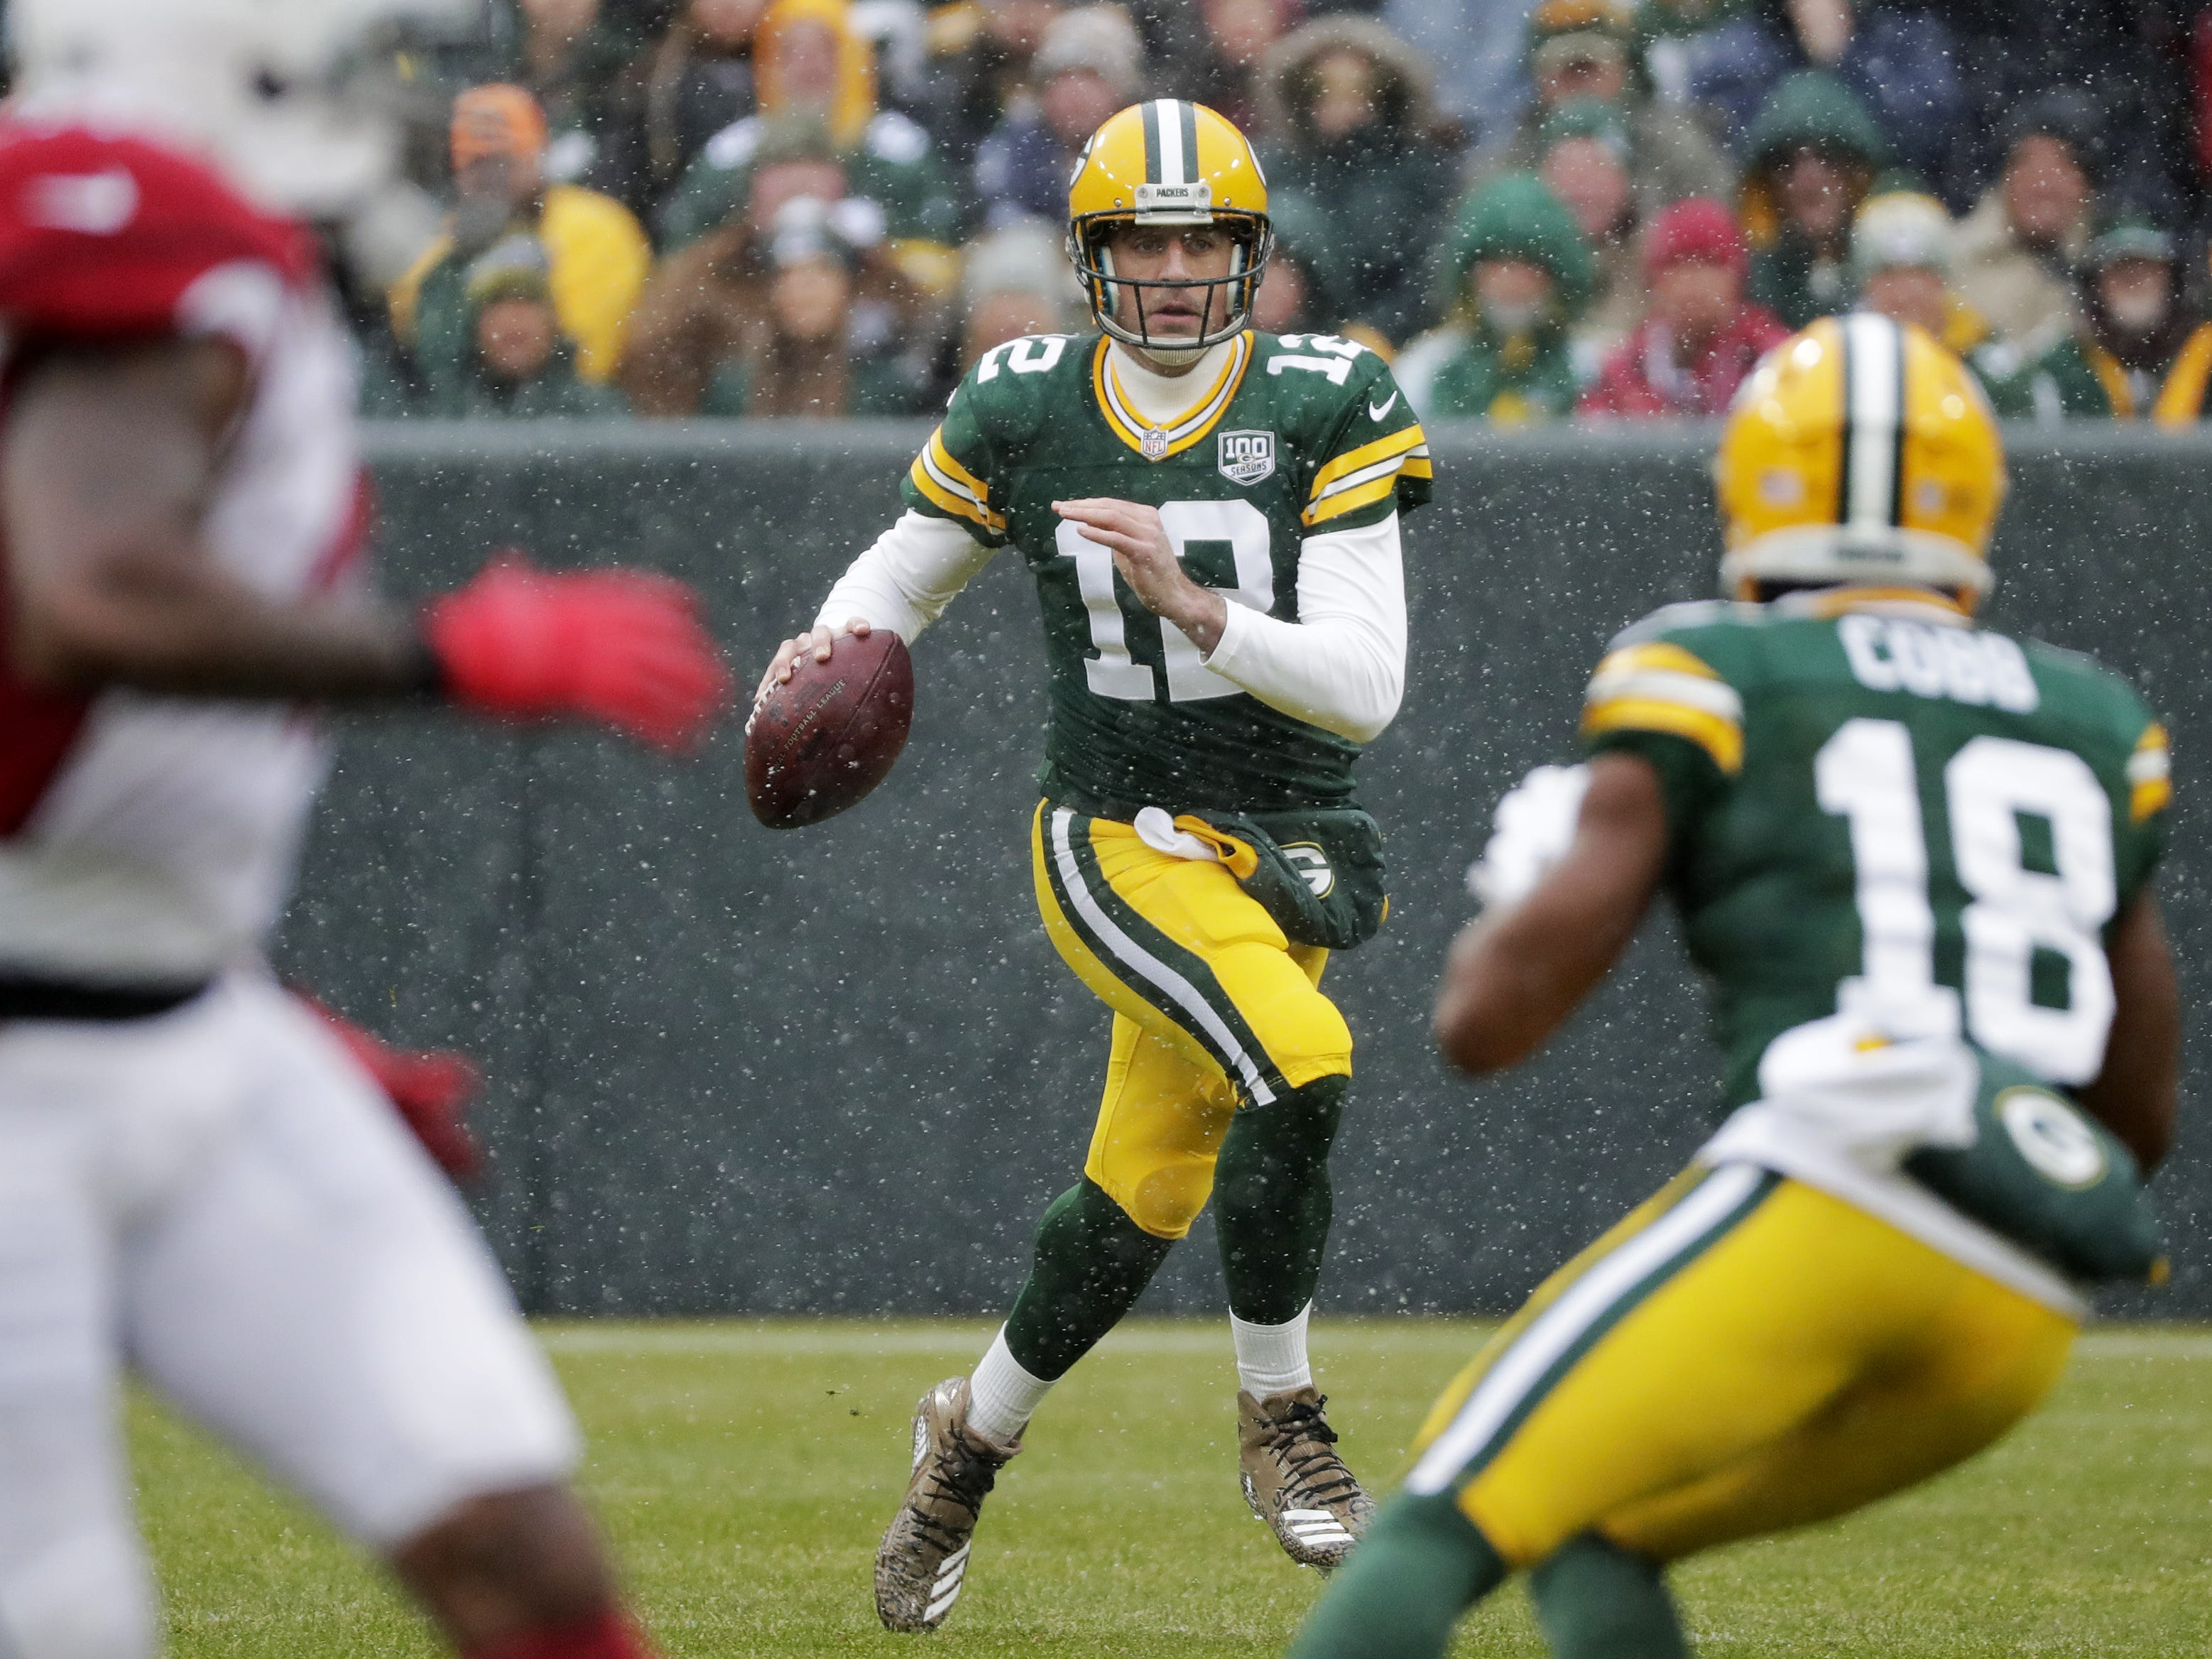 Green Bay Packers quarterback Aaron Rodgers (12) scrambles for a first down against the Arizona Cardinals in the first quarter at Lambeau Field on Sunday, December 2, 2018 in Green Bay, Wis.